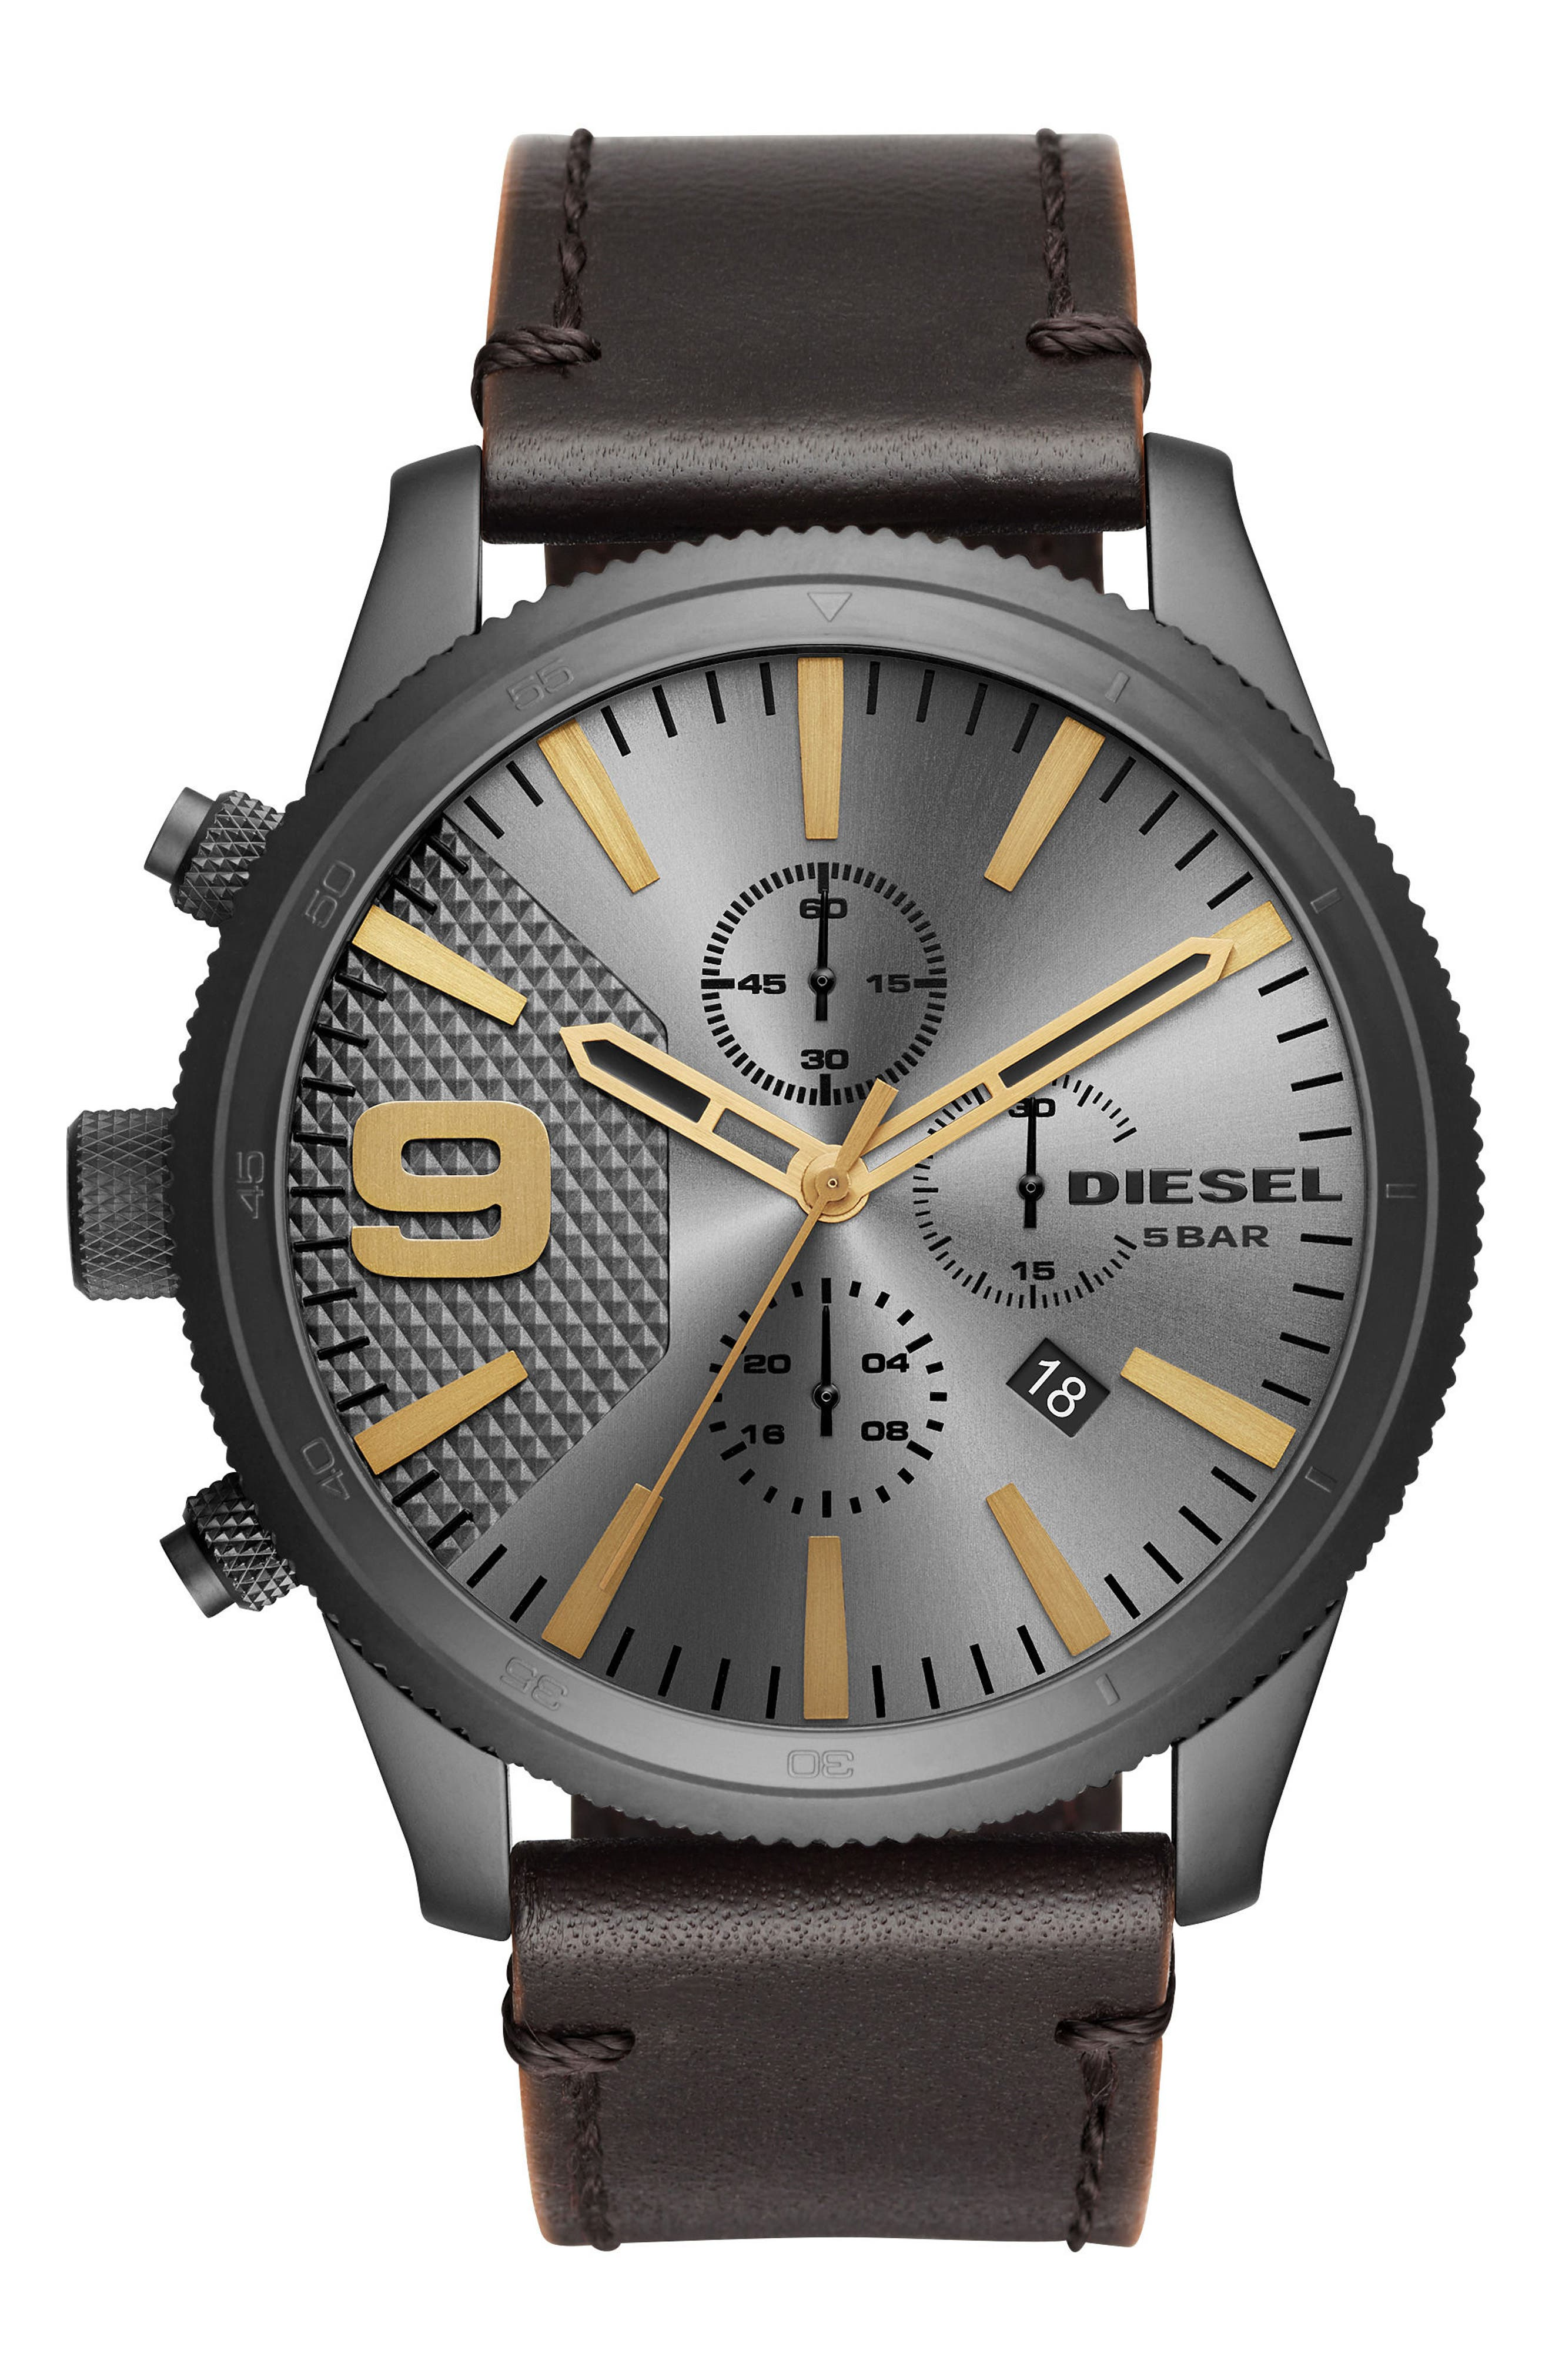 Alternate Image 1 Selected - DIESEL® Rasp Chronograph Leather Strap Watch, 50mm x 59mm